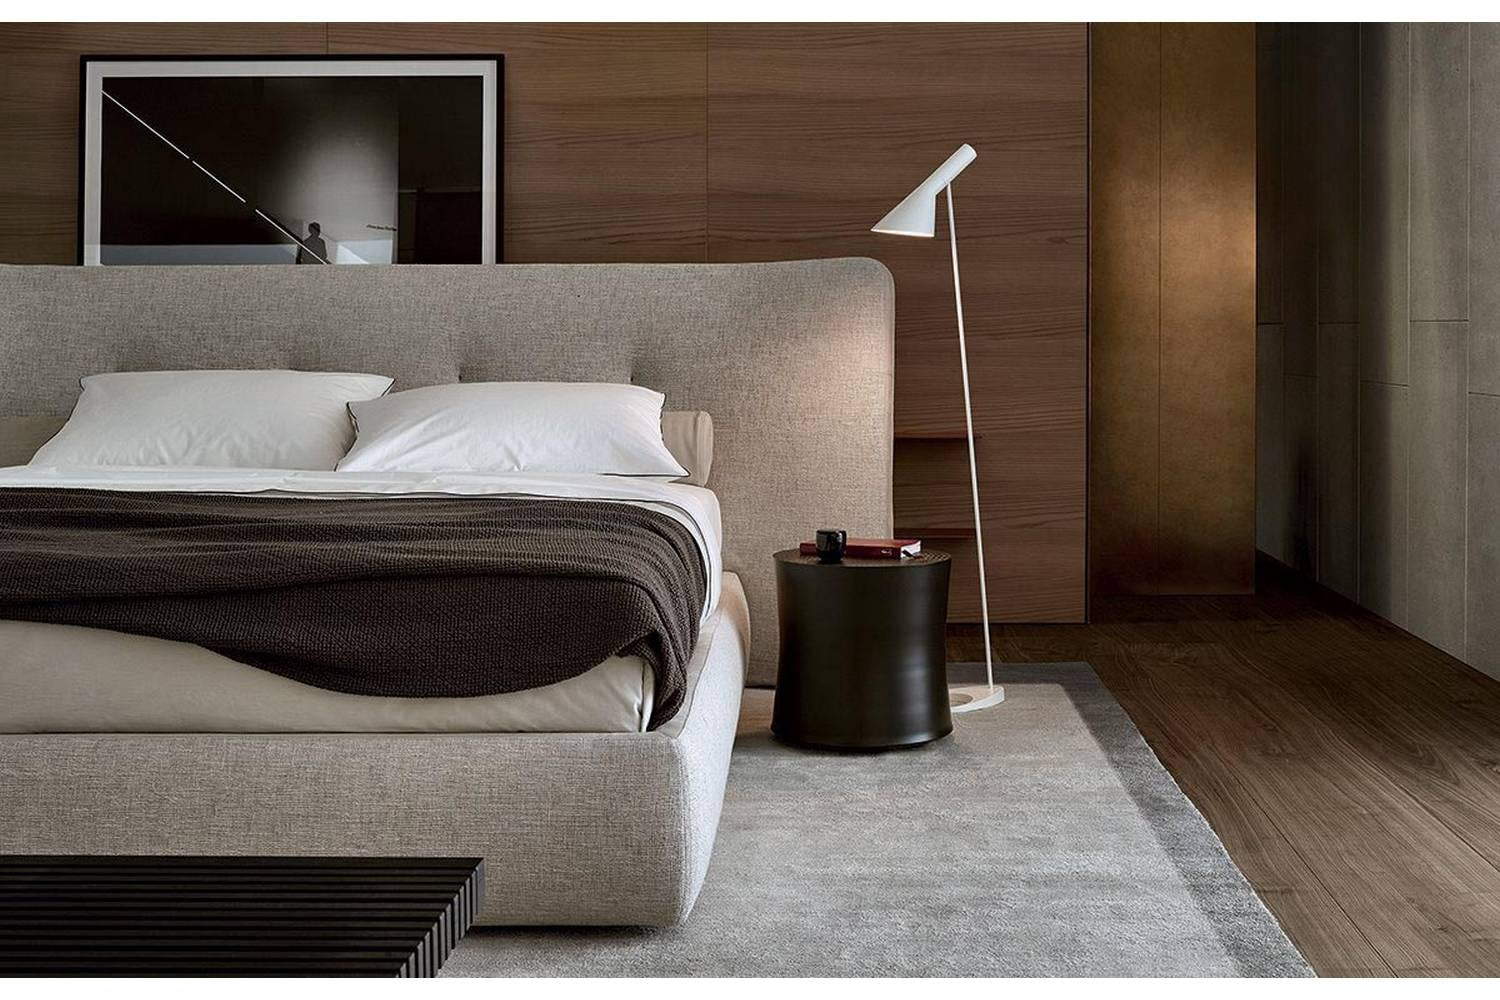 Rever Bed By Rodolfo Dordoni For Poliform Poliform Australia